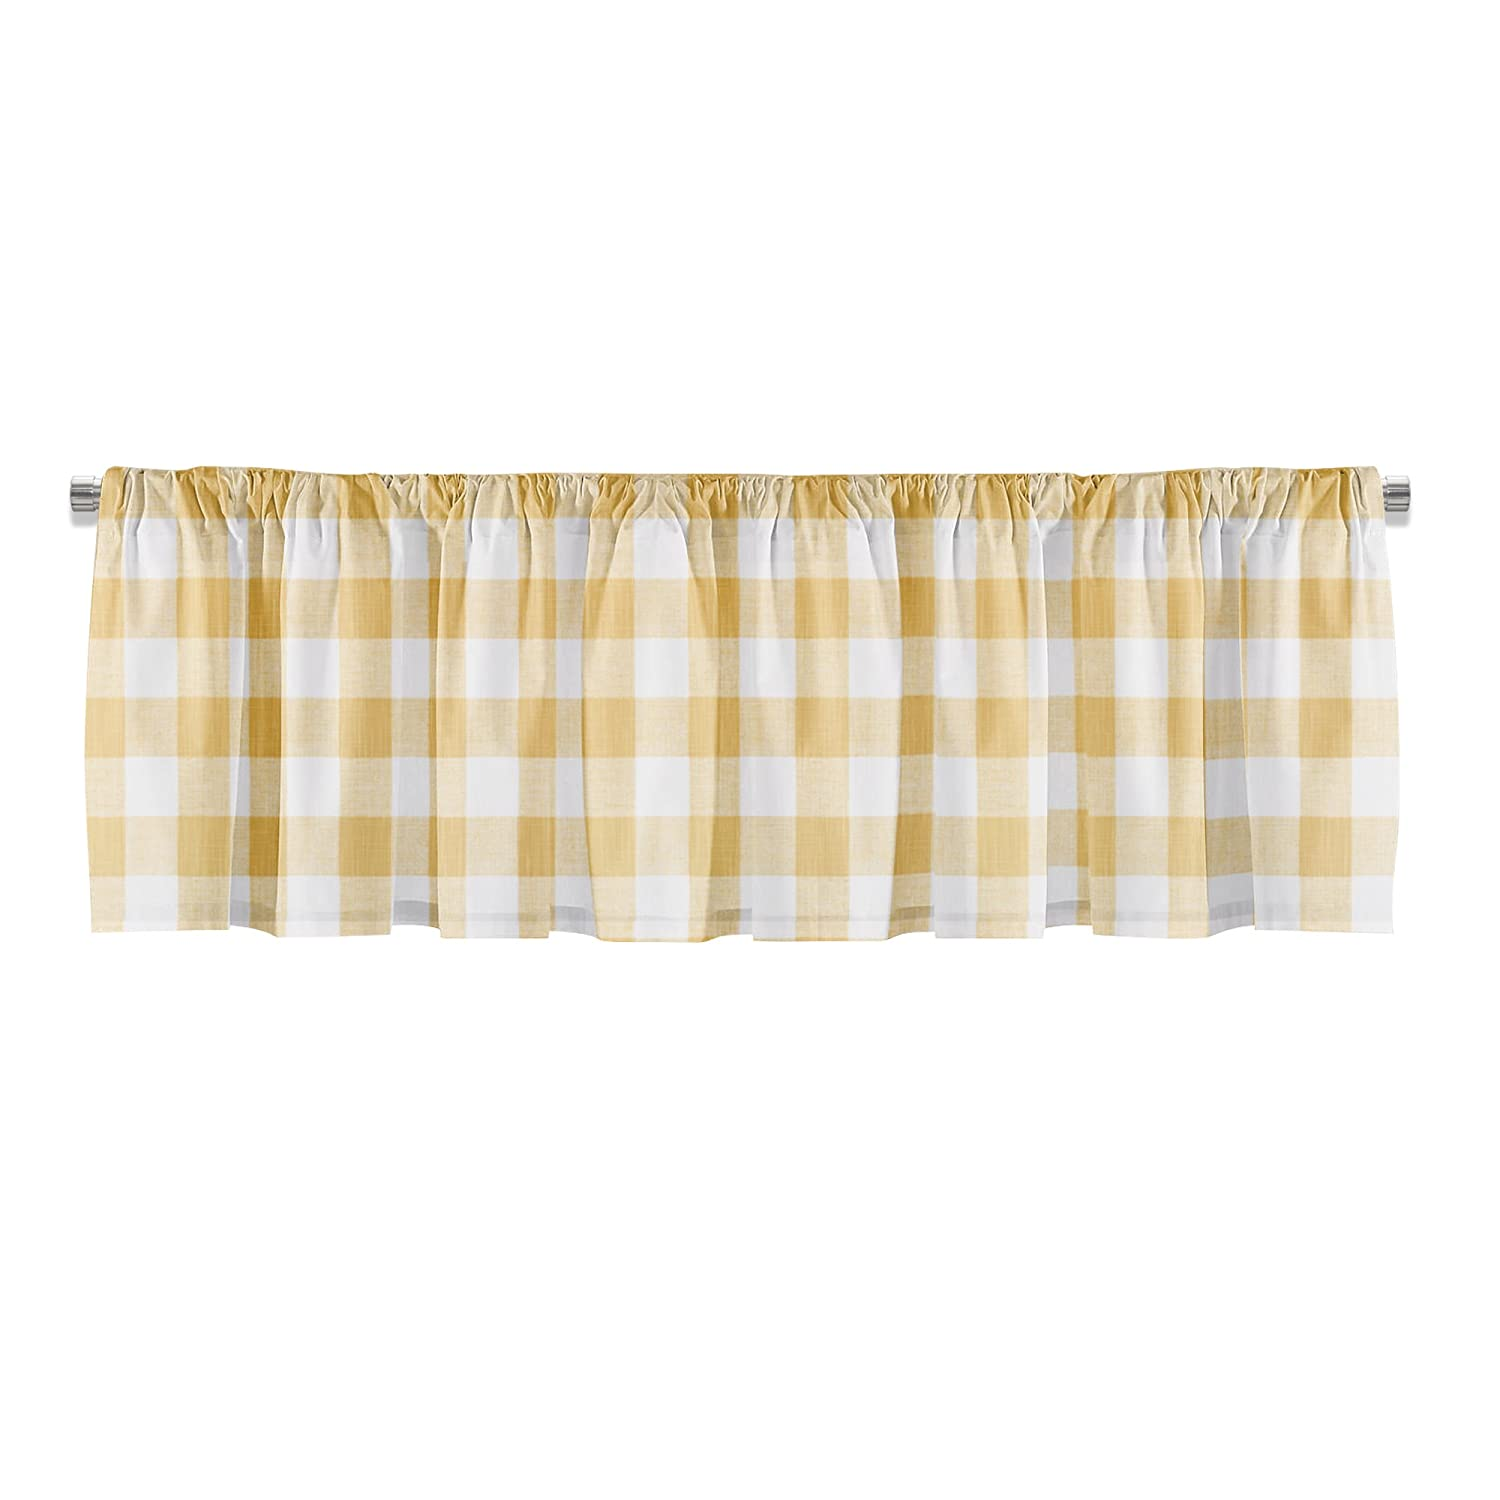 Appleberry Attic Made to Order Window Treatments, Yellow Bathroom Curtains for Farmhouse, Kitchen Window Valance, Yellow Curtain Panels, Buffalo Check Valances - Made in USA